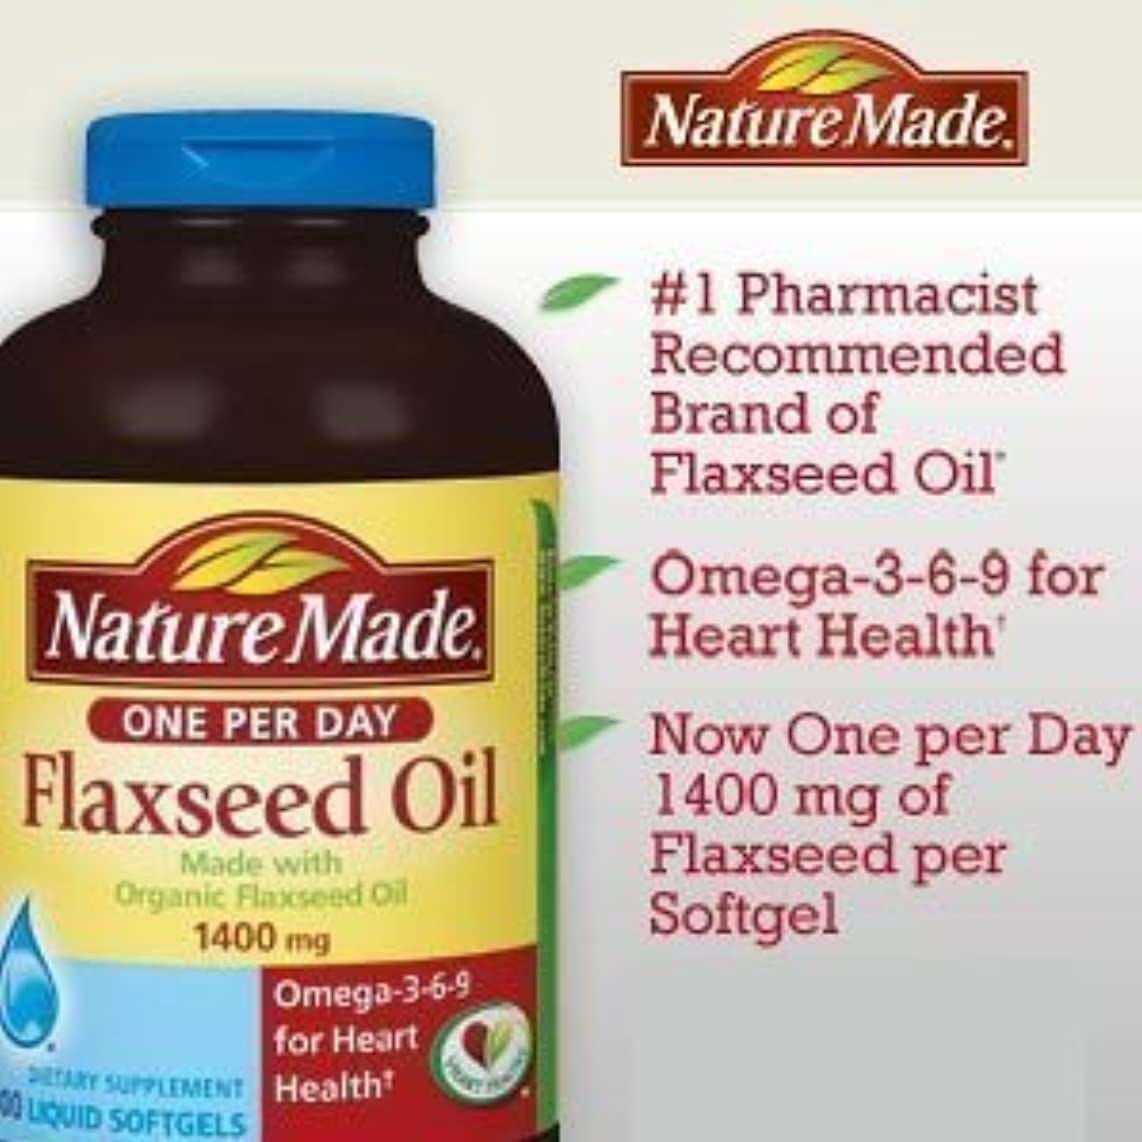 バージンユダヤ人光景Nature Made Organic Flaxseed Oil, Omega-3-6-9 for Heart Health, 1400 mg, Liquid Softgels - 300 Count by USA [並行輸入品]